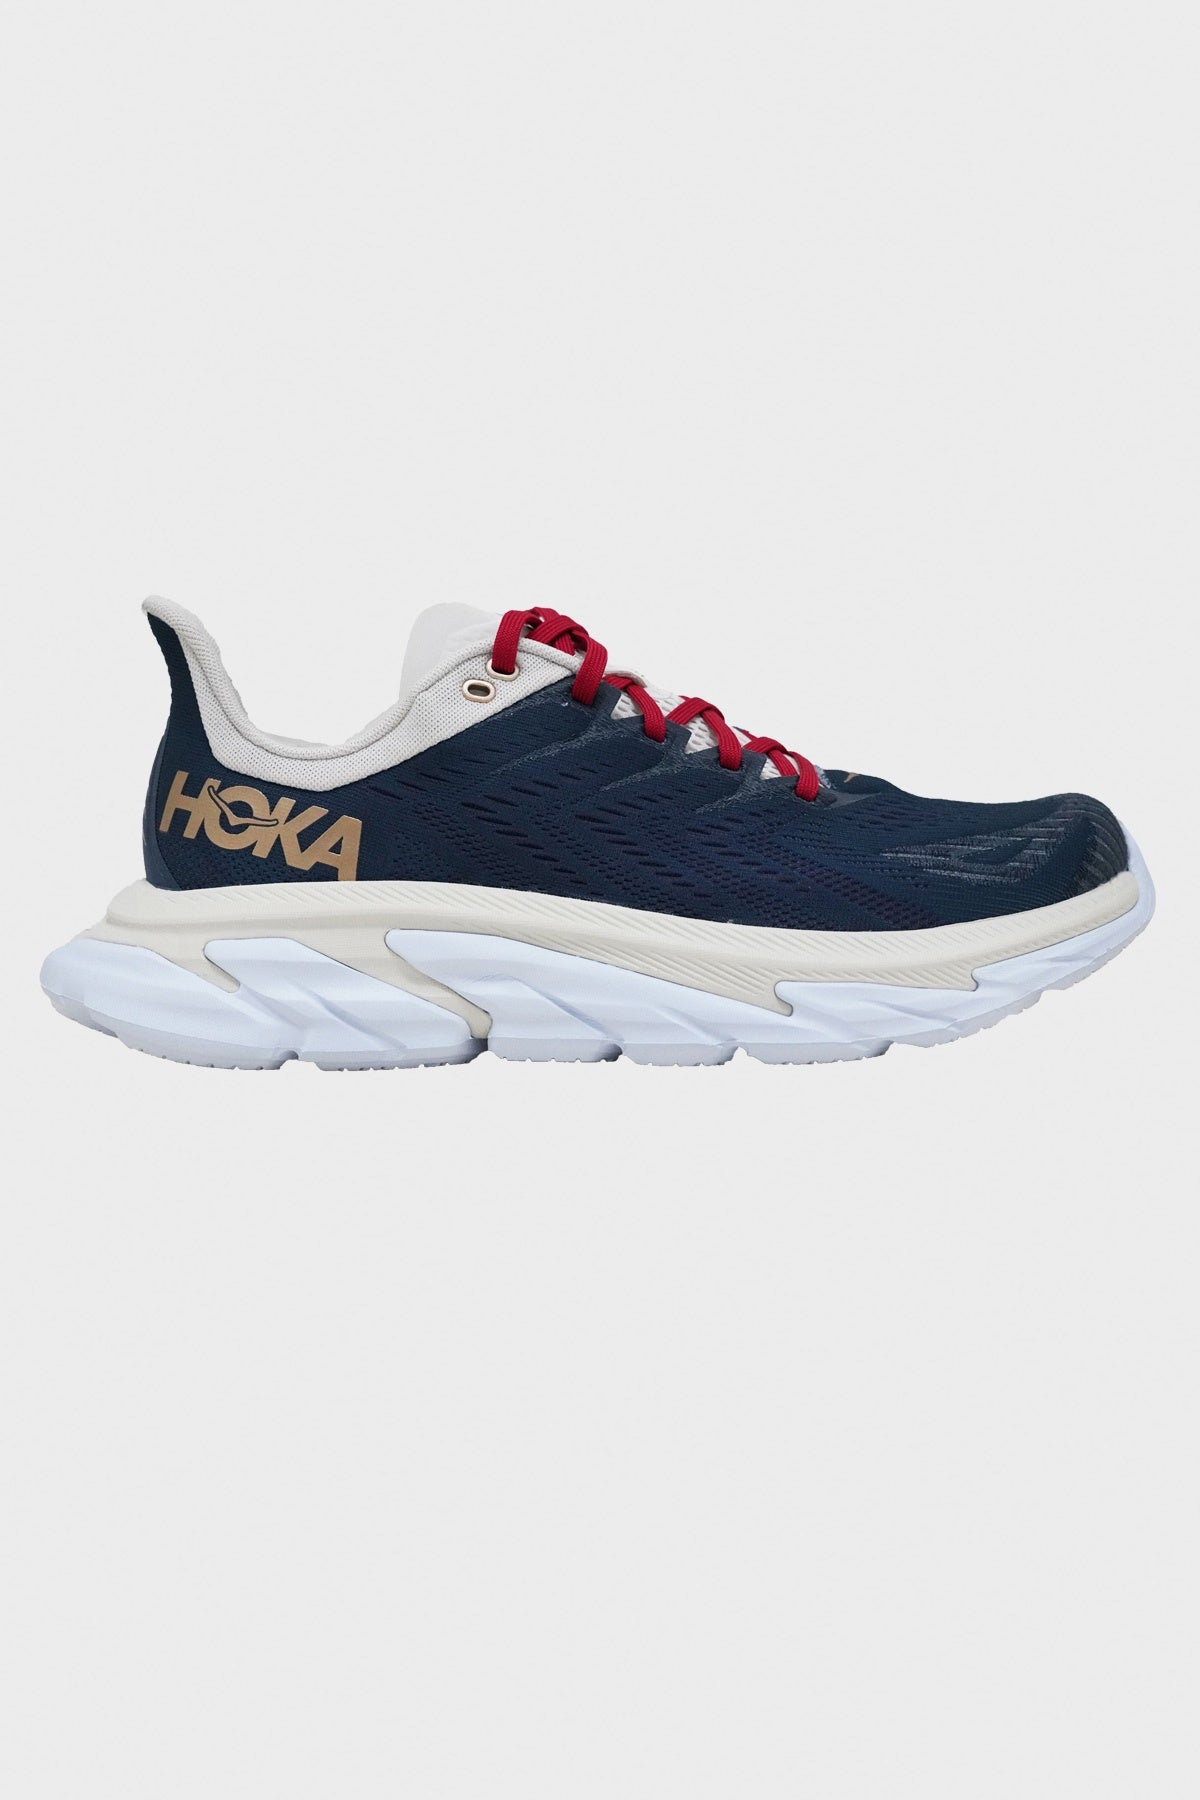 HOKA ONE ONE - Clifton Edge - Vintage Indigo/Tofu - Canoe Club